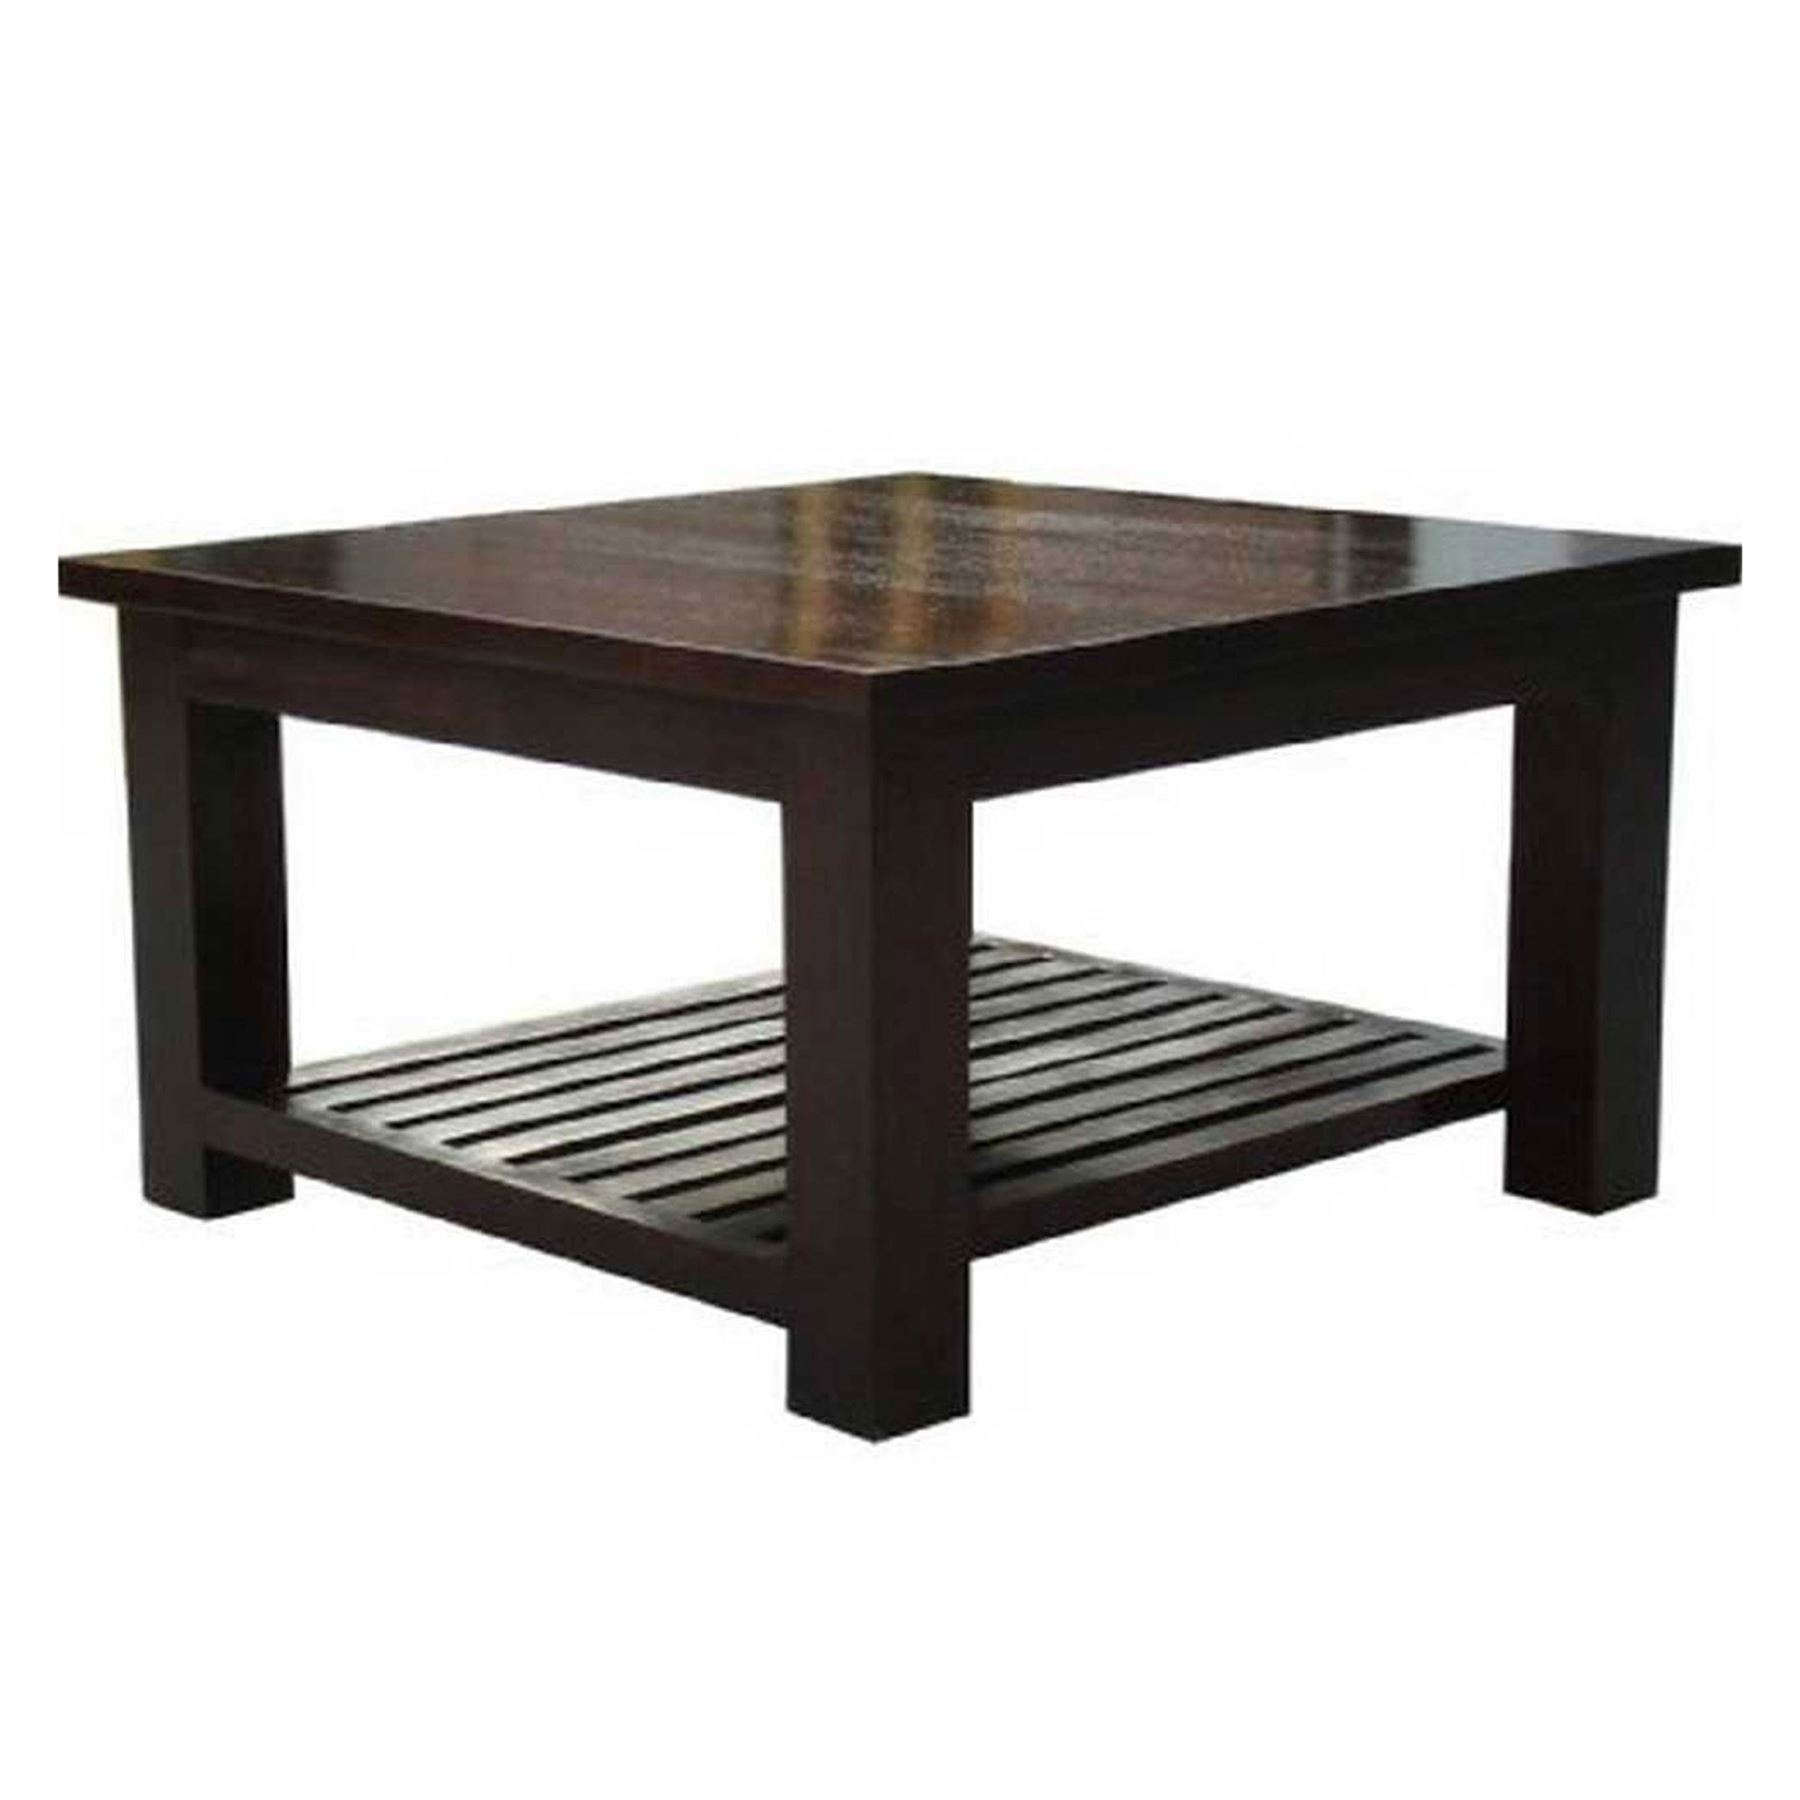 mangat solid dark wood furniture unit table bookcase accent dining with stools behind couch garage long wooden glass top grey occasional chair outdoor chairs bunnings home